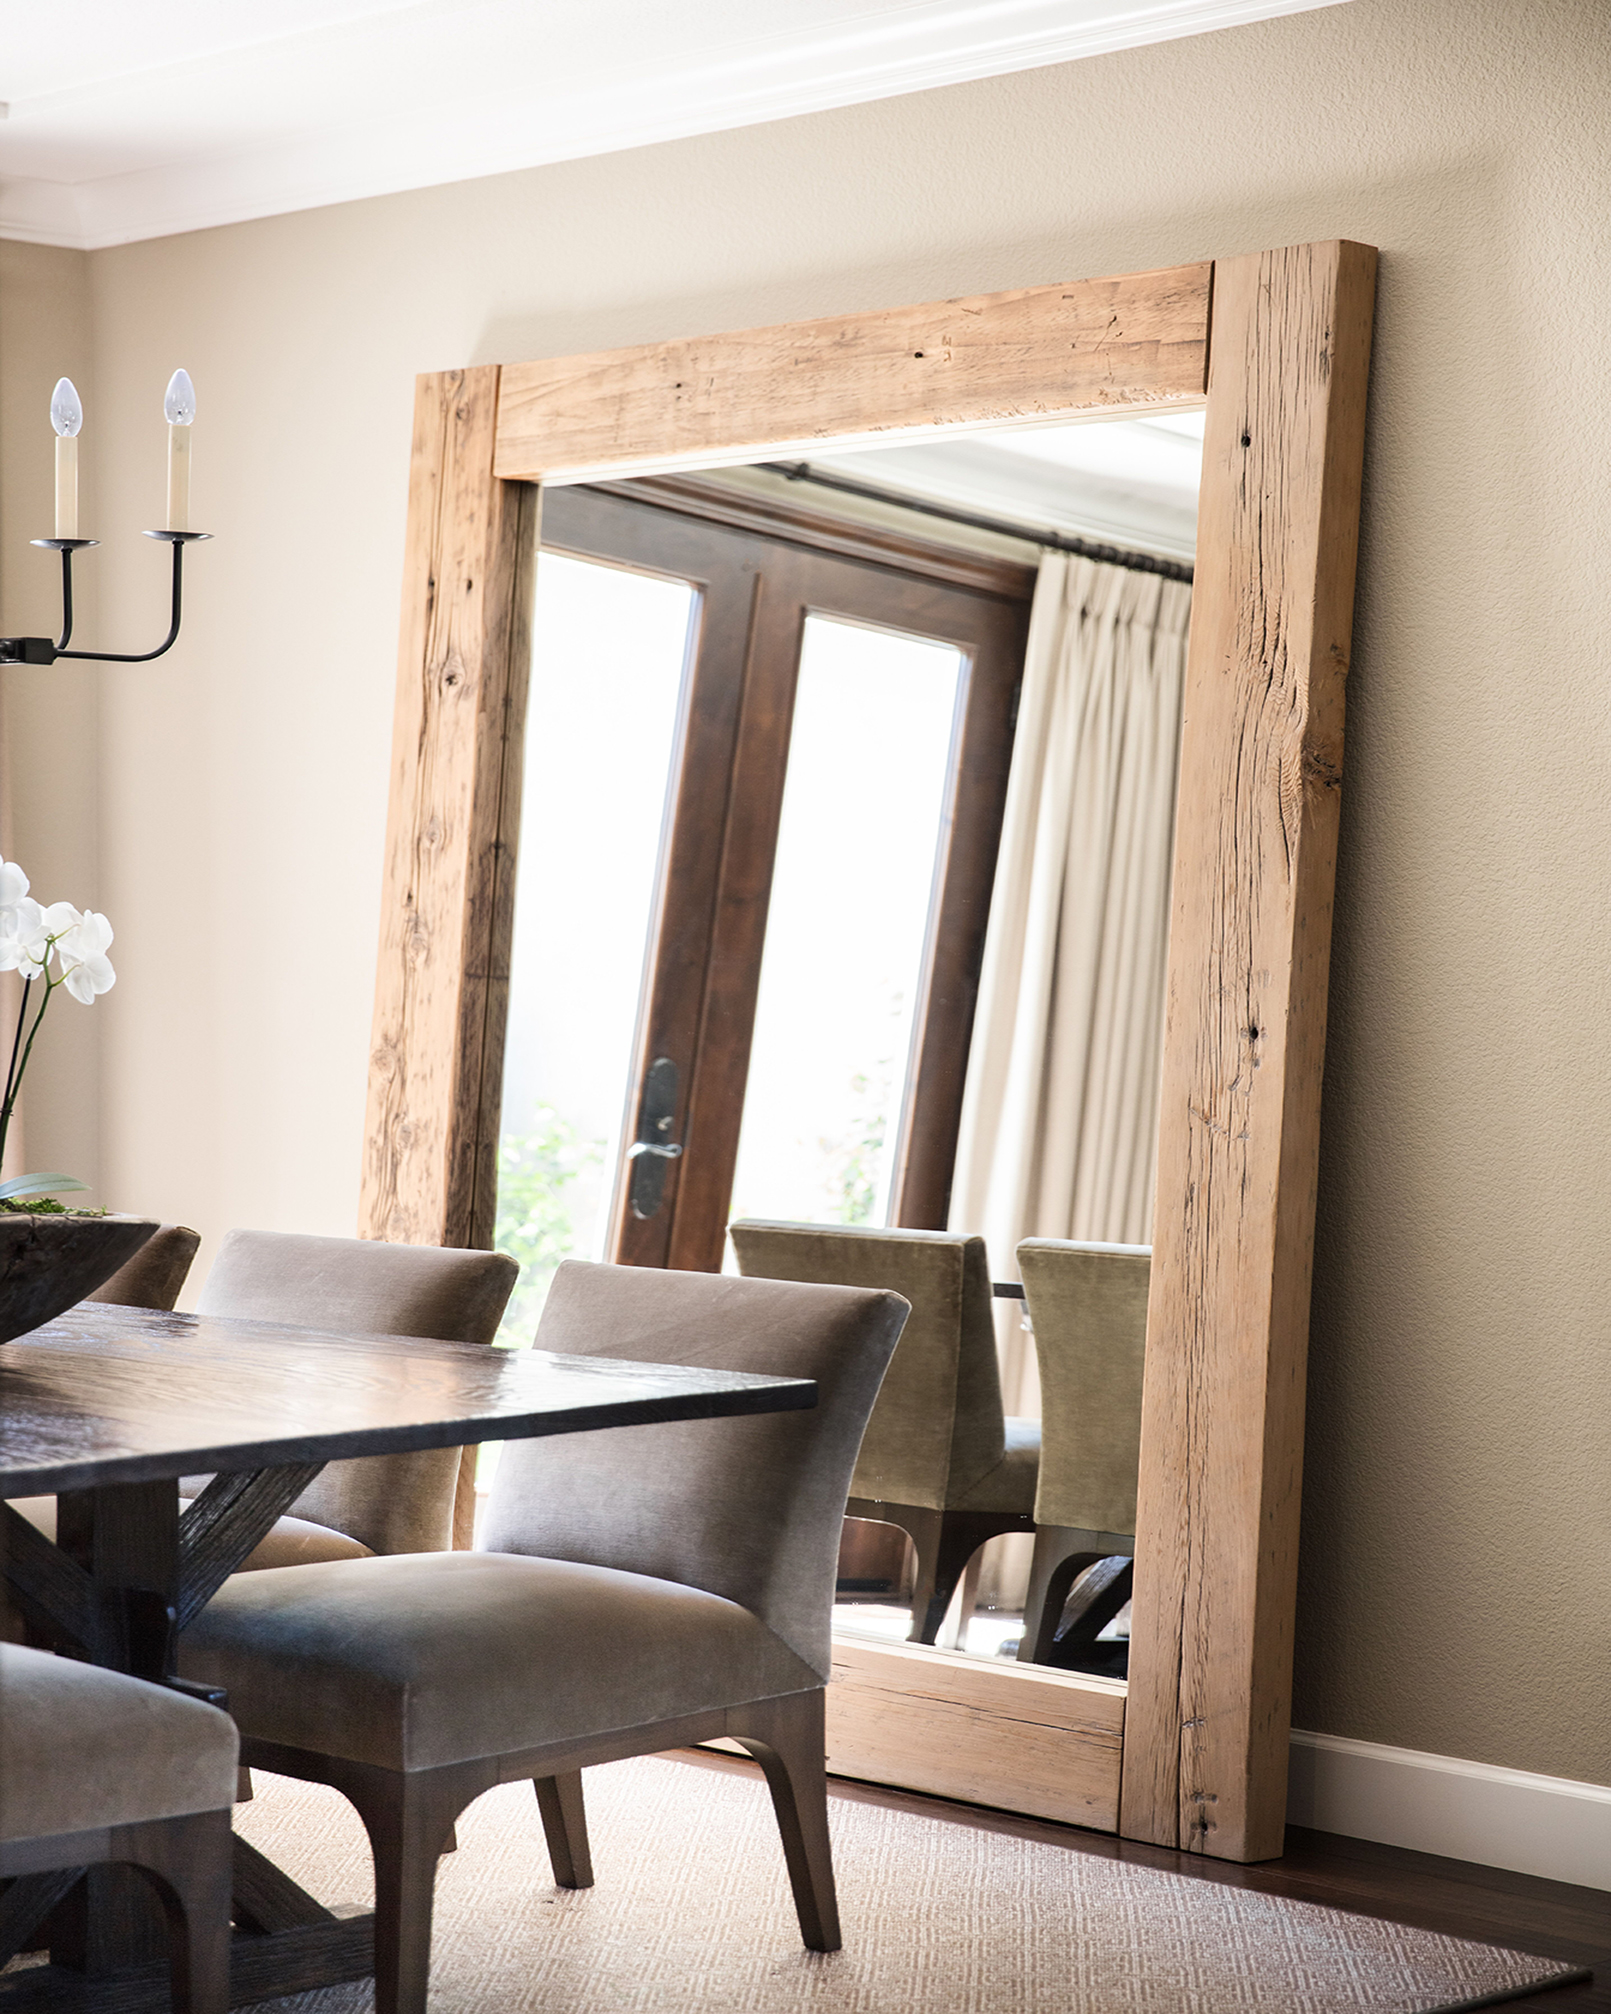 A striking mirror framed in reclaimed oak steals the show in the dining room. by Kriste Michelini Interiors